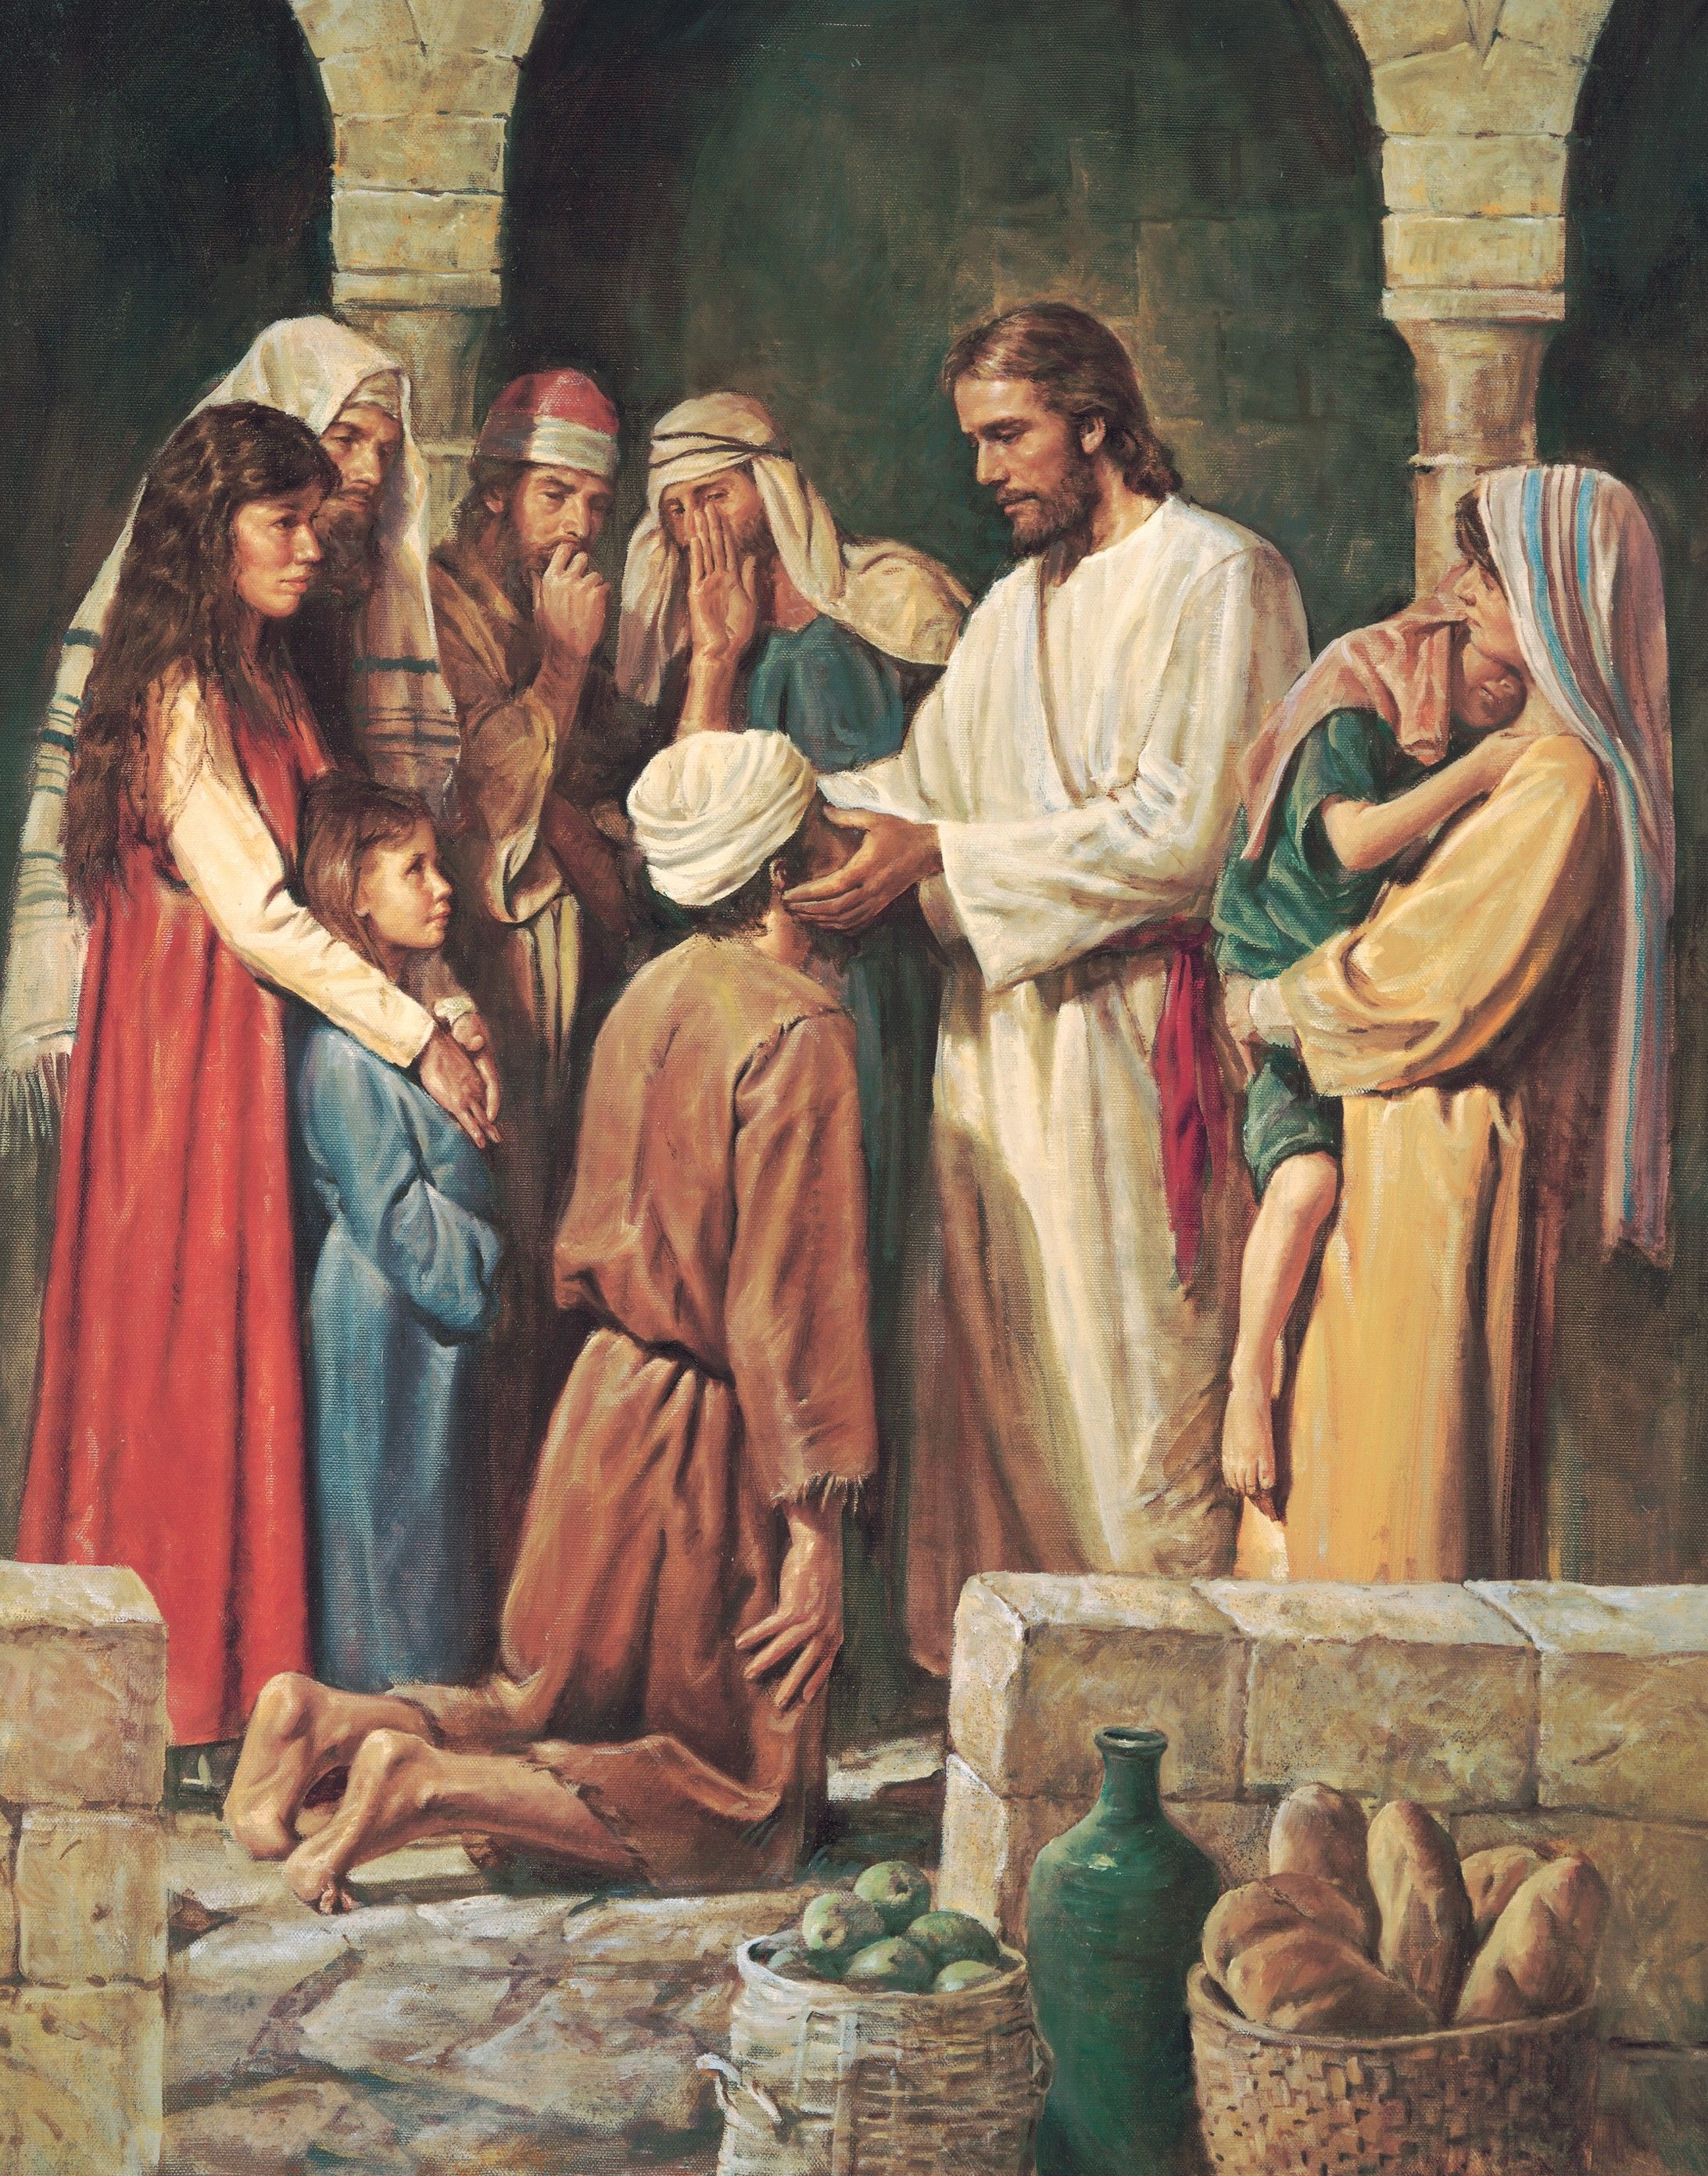 Christ Healing a Blind Man, by Del Parson (62145); GAK 213; nursery manual lesson 5, page 26; Primary manual 1-43; Primary manual 3-16; Primary manual 7-14; John 9:11